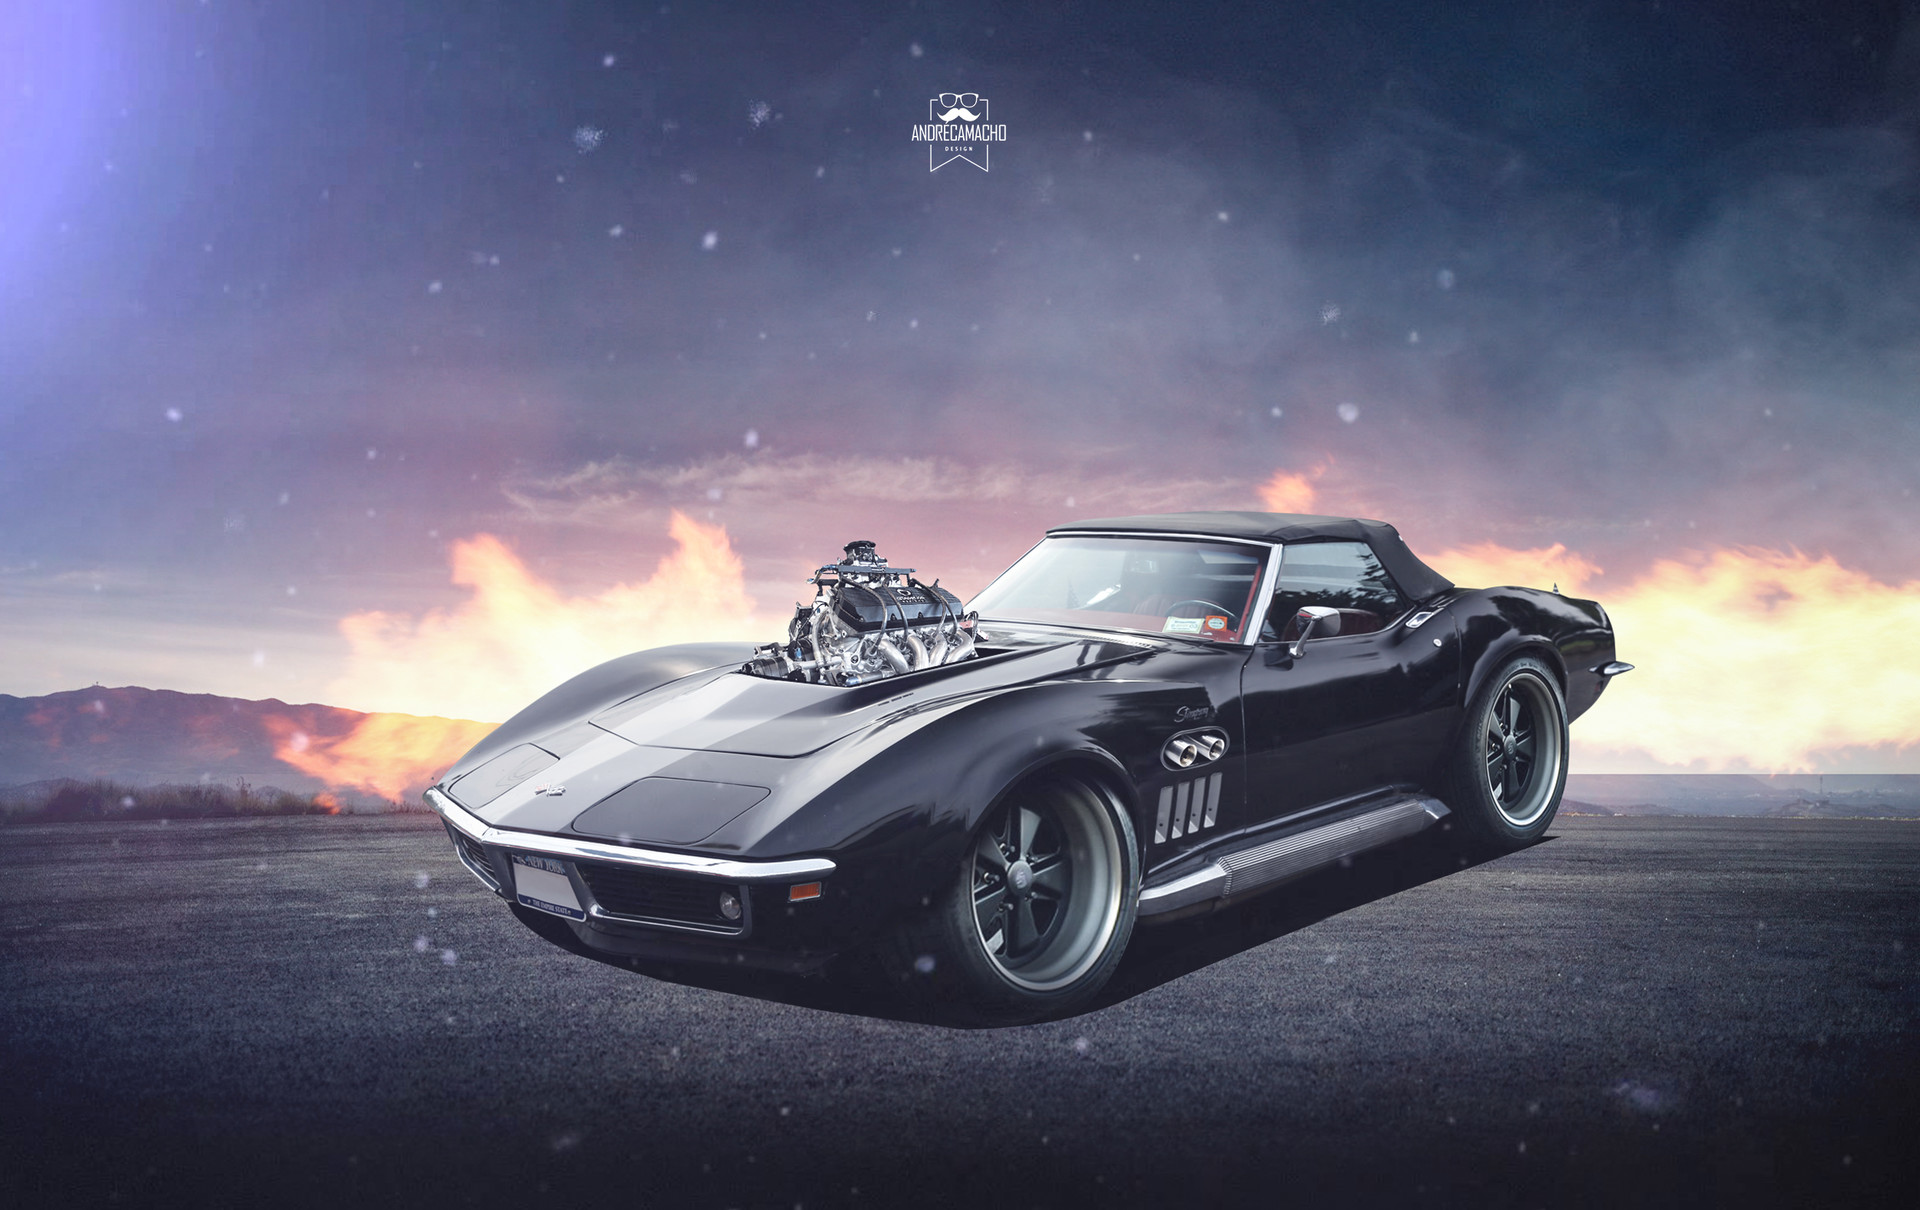 Andre camacho design chevrolet corvette stingray 1969ryuruw